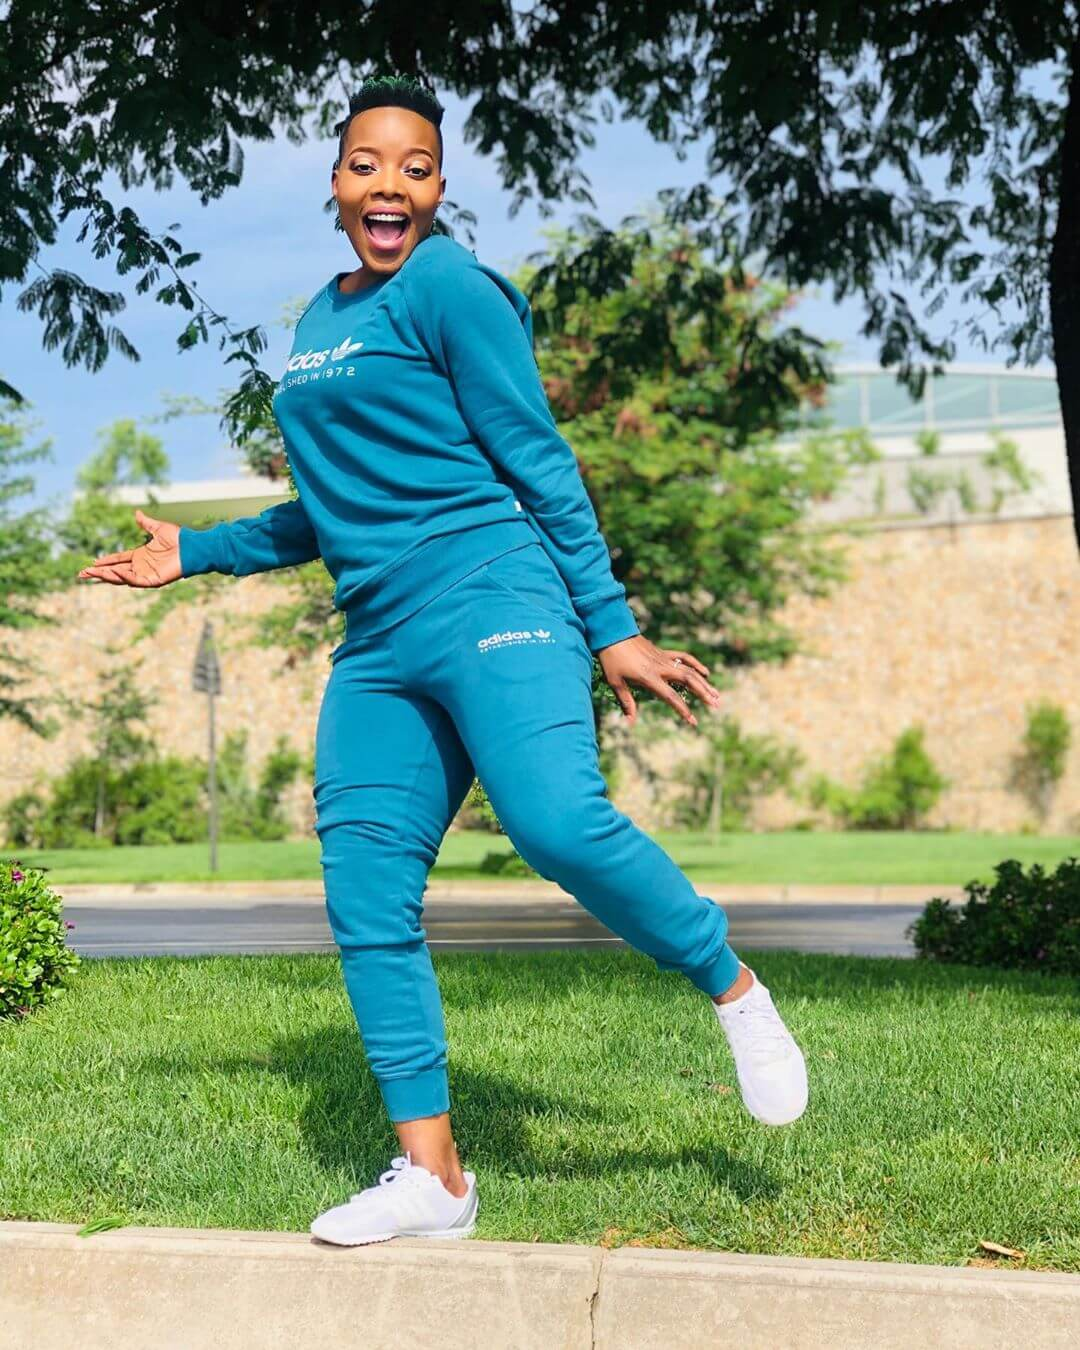 Nomcebo Zikode Biography: Wikipedia, Profile, Age, Husband, Songs & Pictures